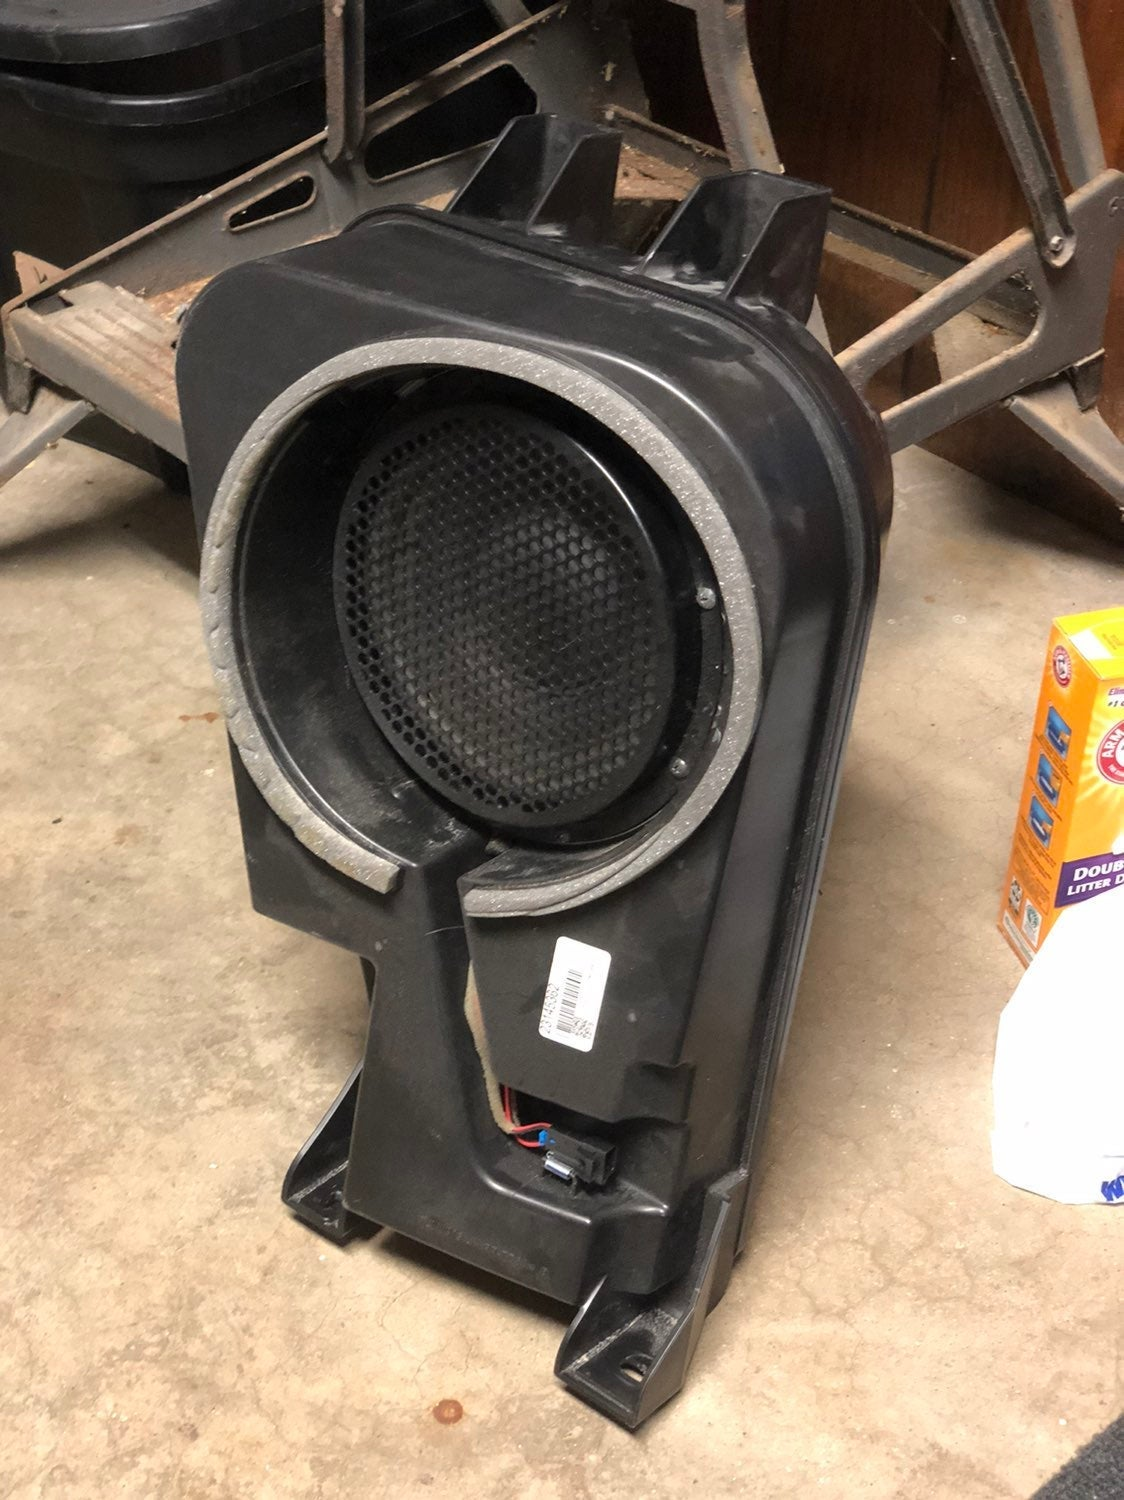 2013 Chevy Equinox subwoofer